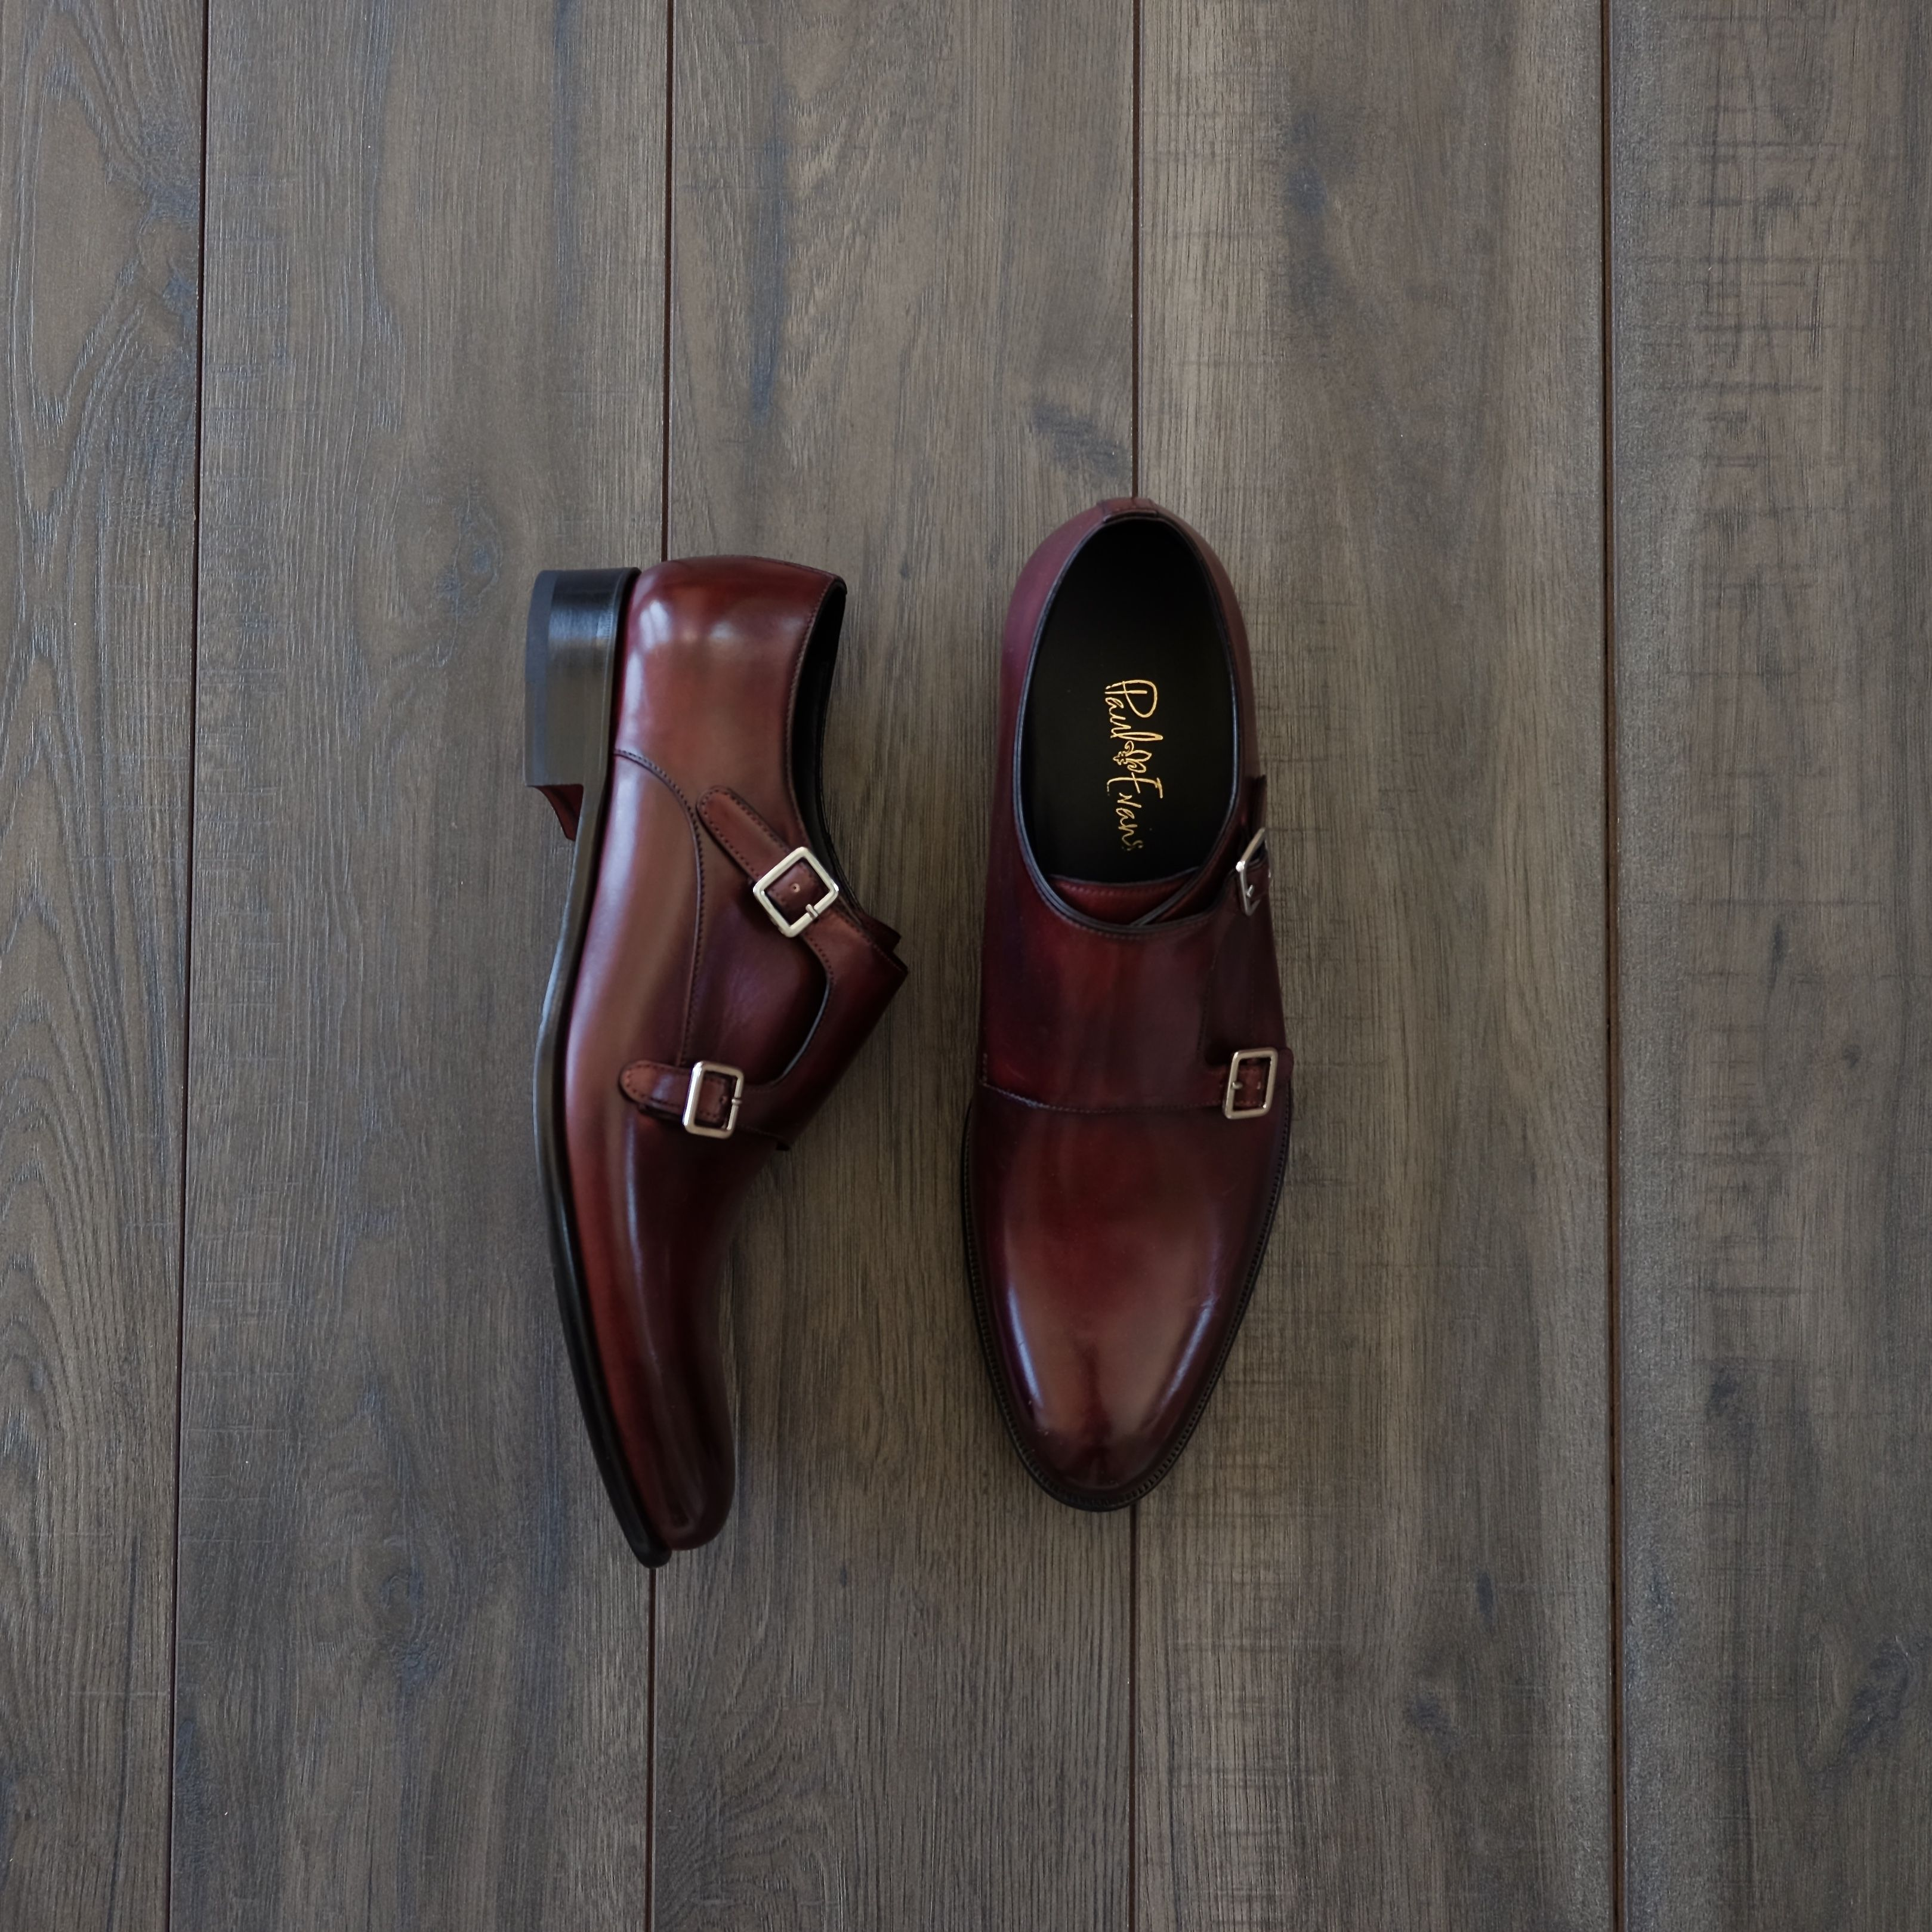 ac6364a743 Oxblood double Monk Shoes from Paul Evans. #doublemonk #paulevans #shoes  #footwear #monks #monkstrap